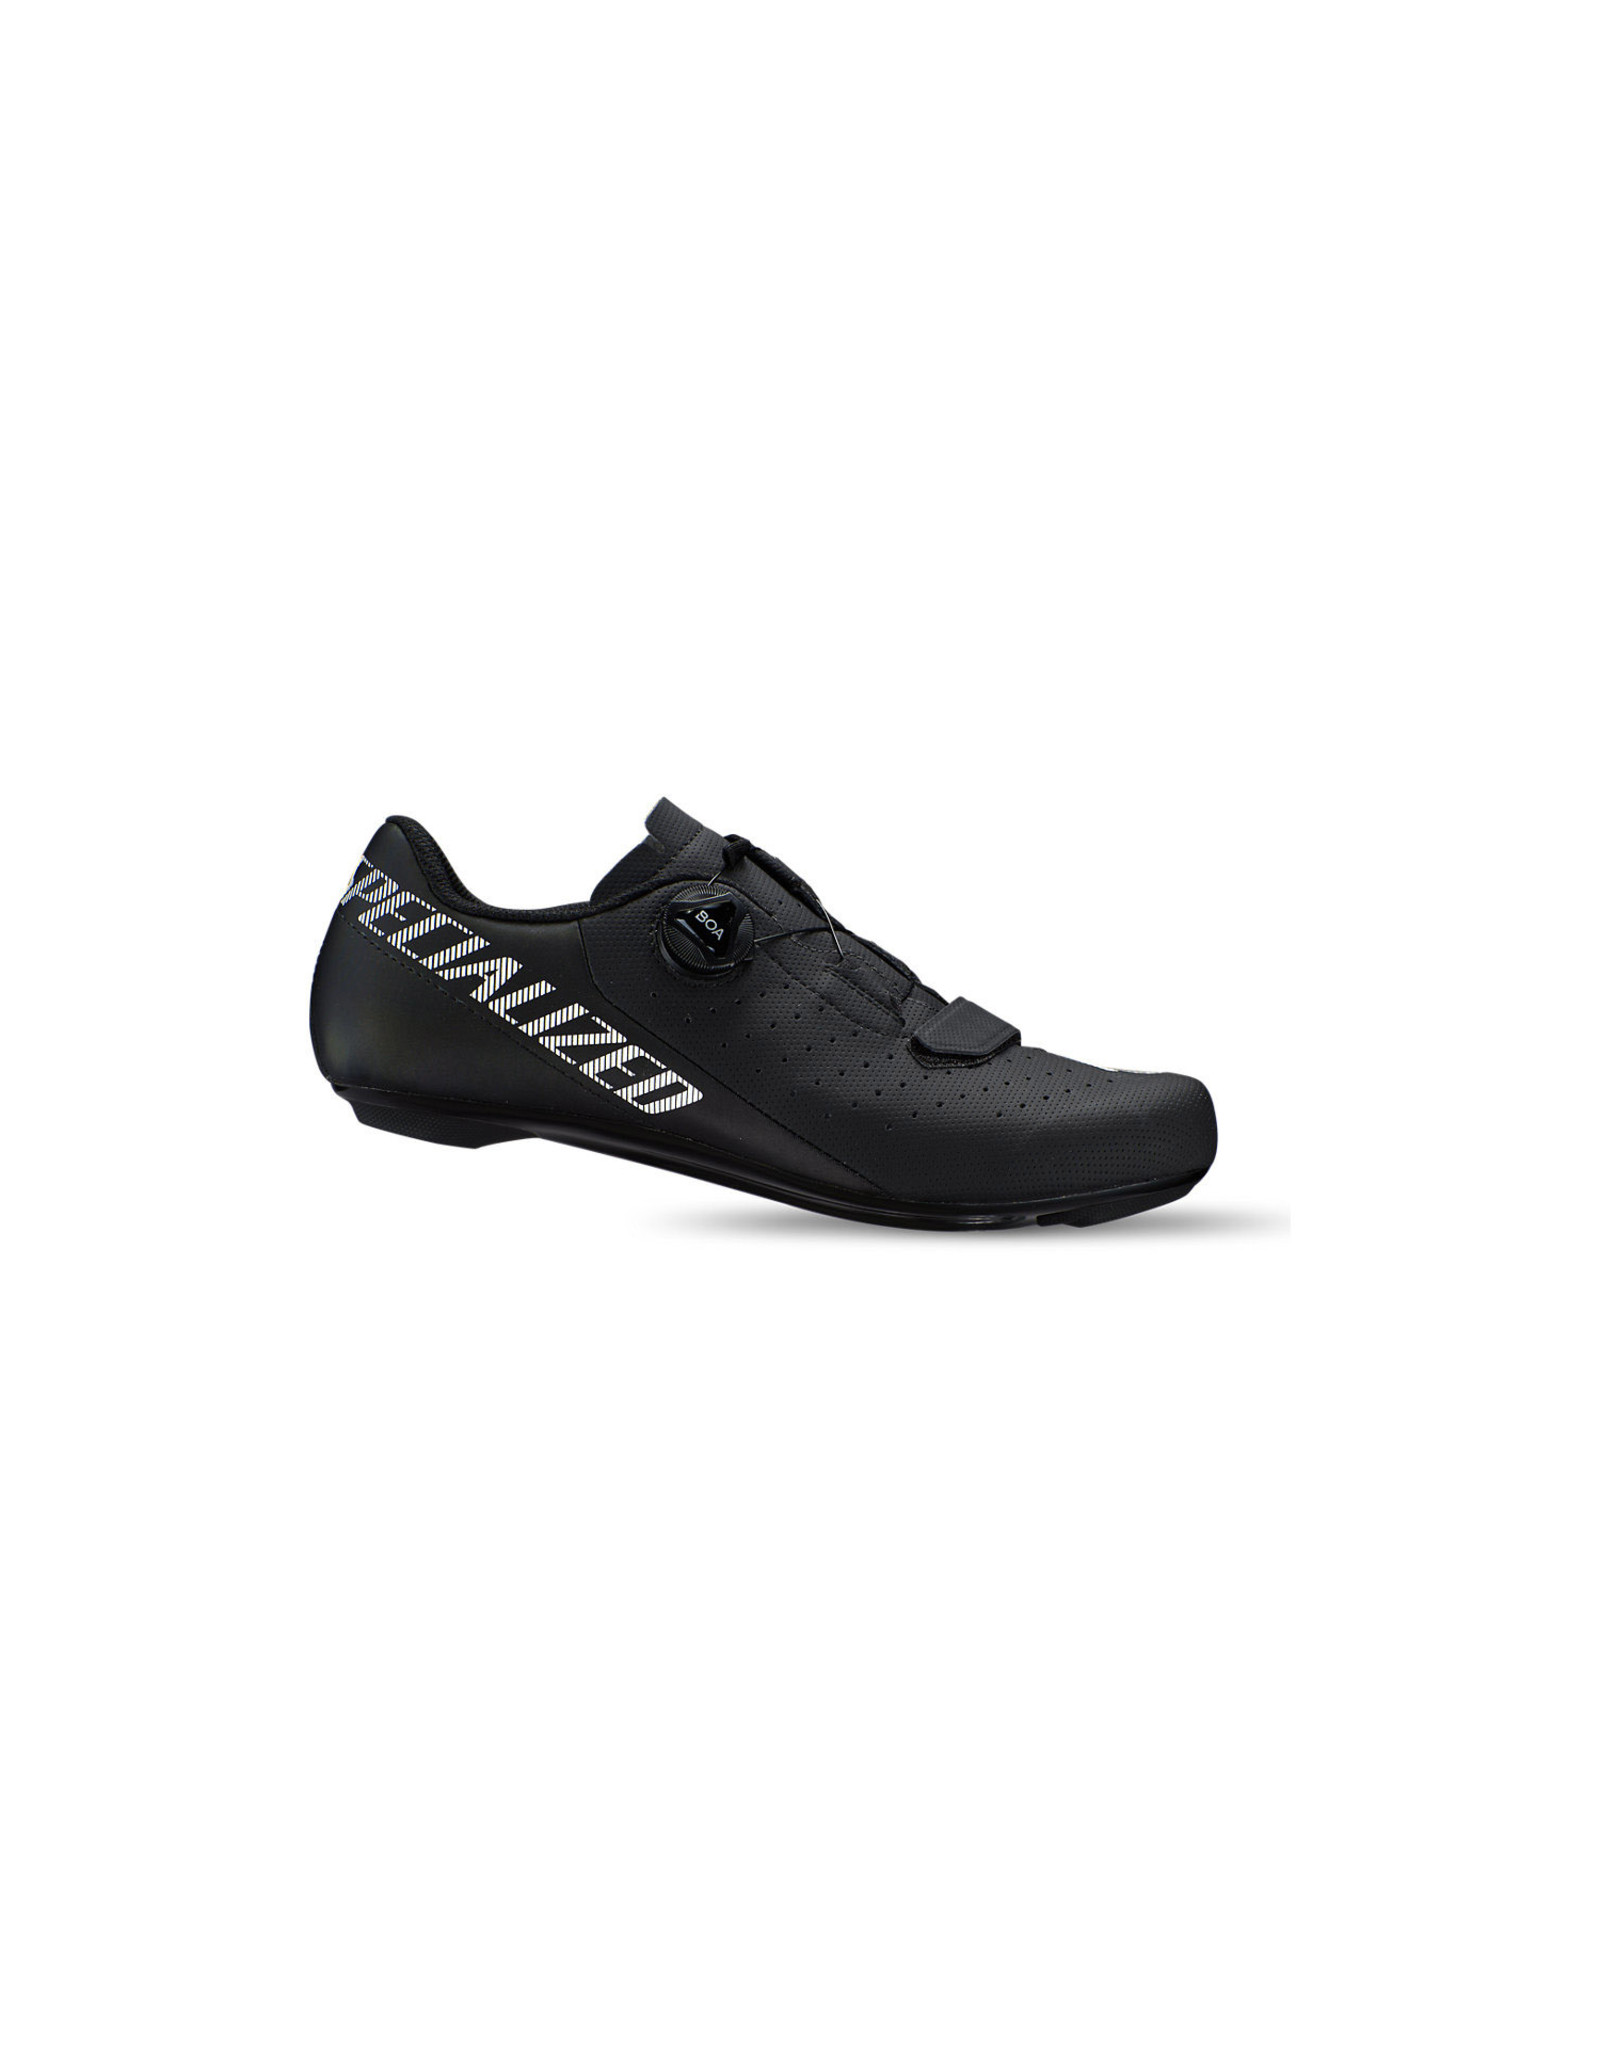 Specialized Shoes - Specialized Road Shoe Torch 1.0